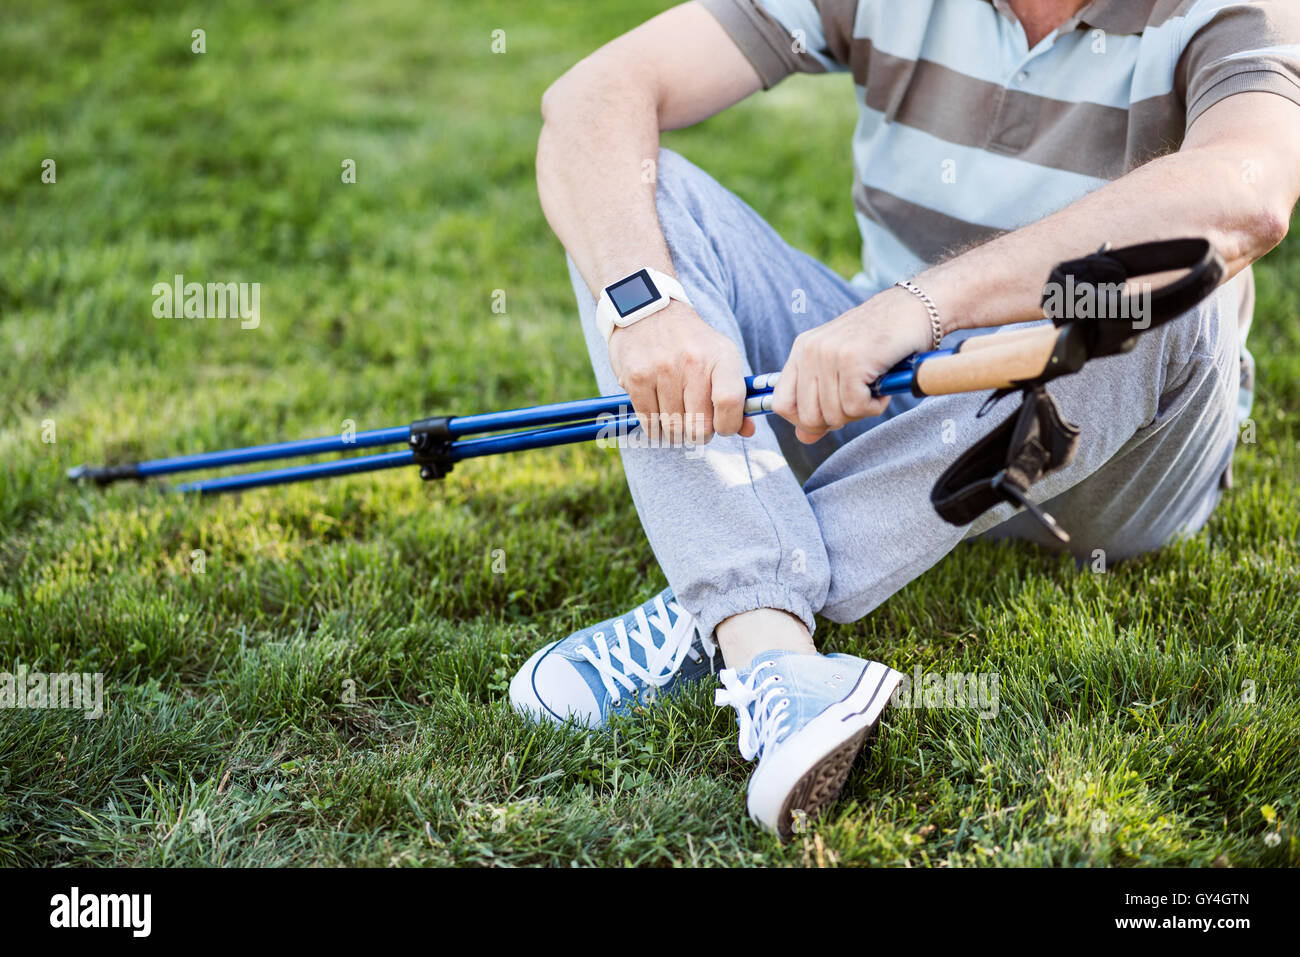 Man having rest after work-out on the grass - Stock Image